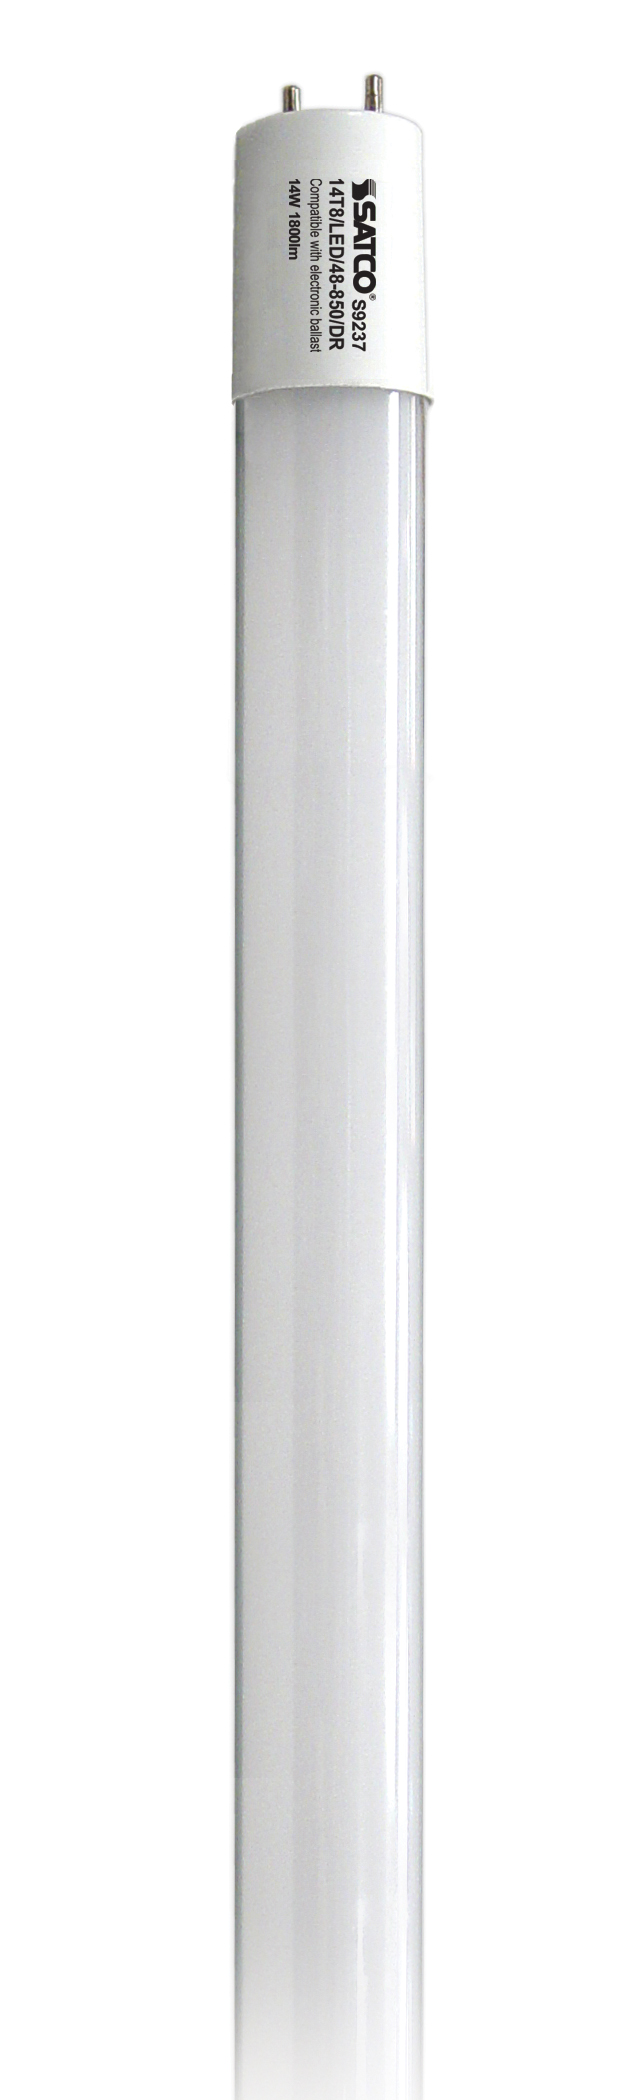 Satco,S9237,14T8/LED/48-850/DR